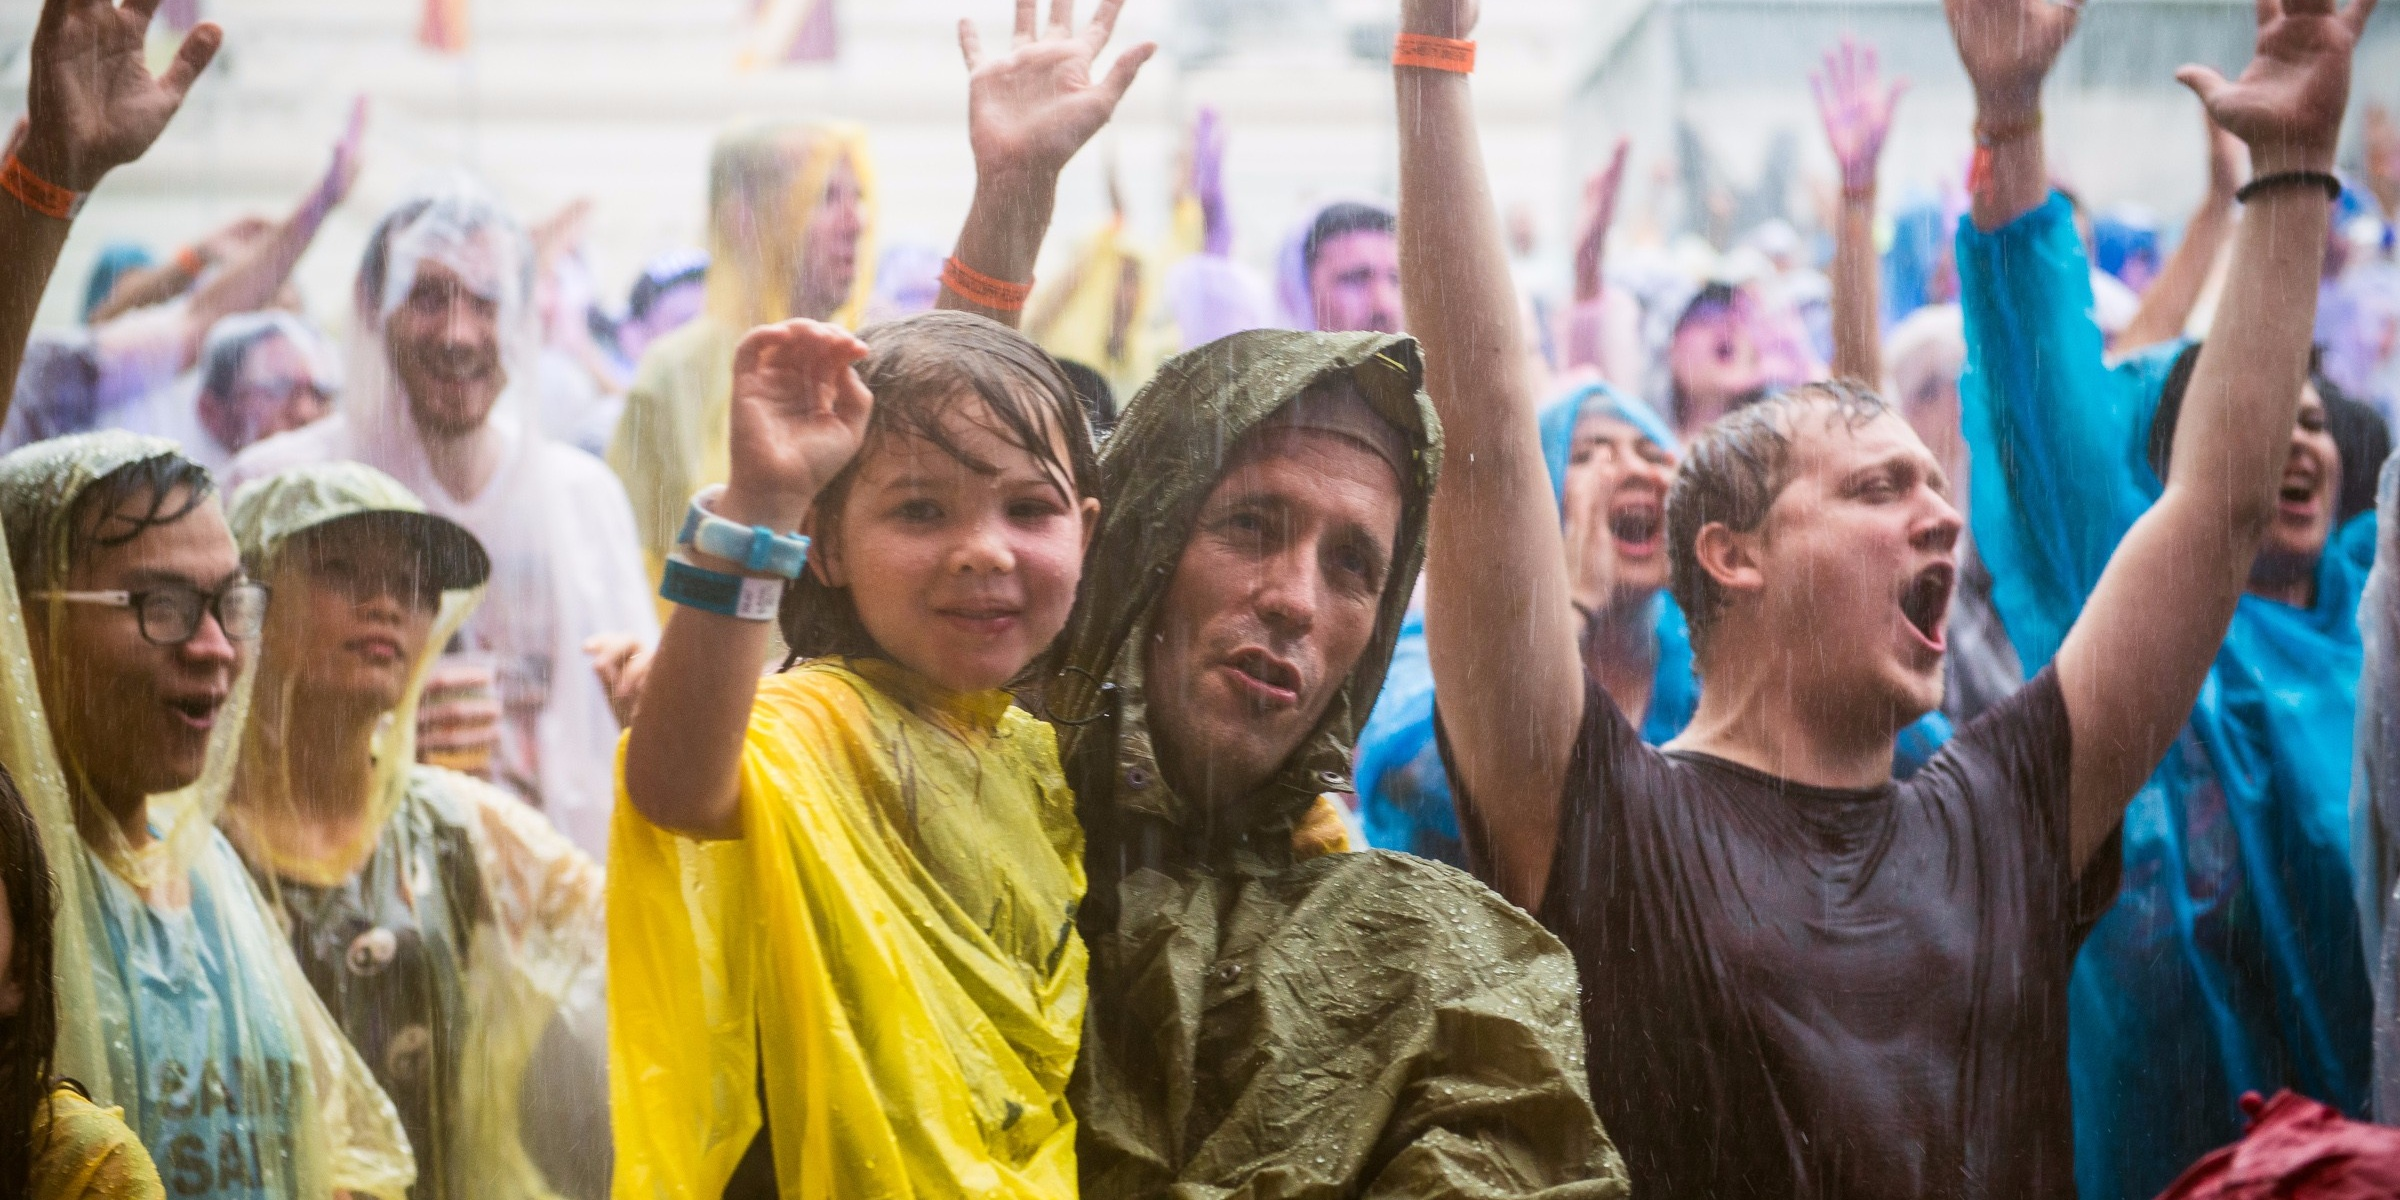 Neon Lights 2016: A muddy, memorable festival for the ages